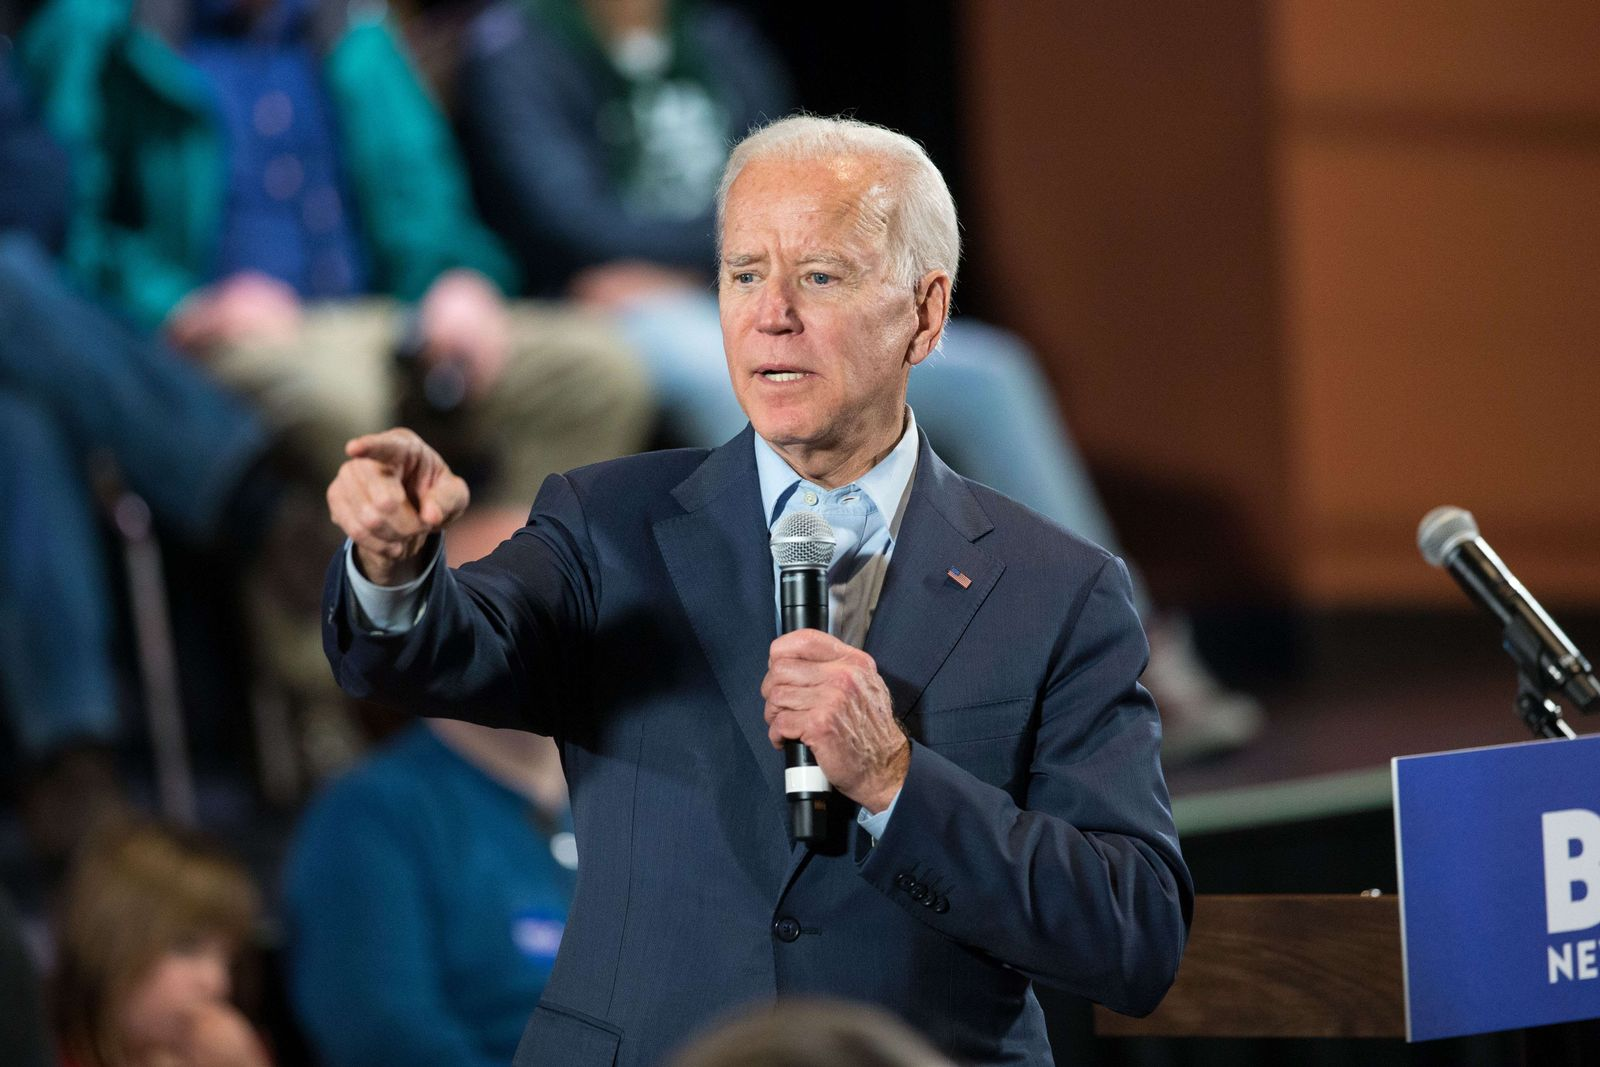 US-PRESIDENTIAL-CANDIDATE-JOE-BIDEN-HOLDS-CAMPAIGN-TOWN-HALLS-IN